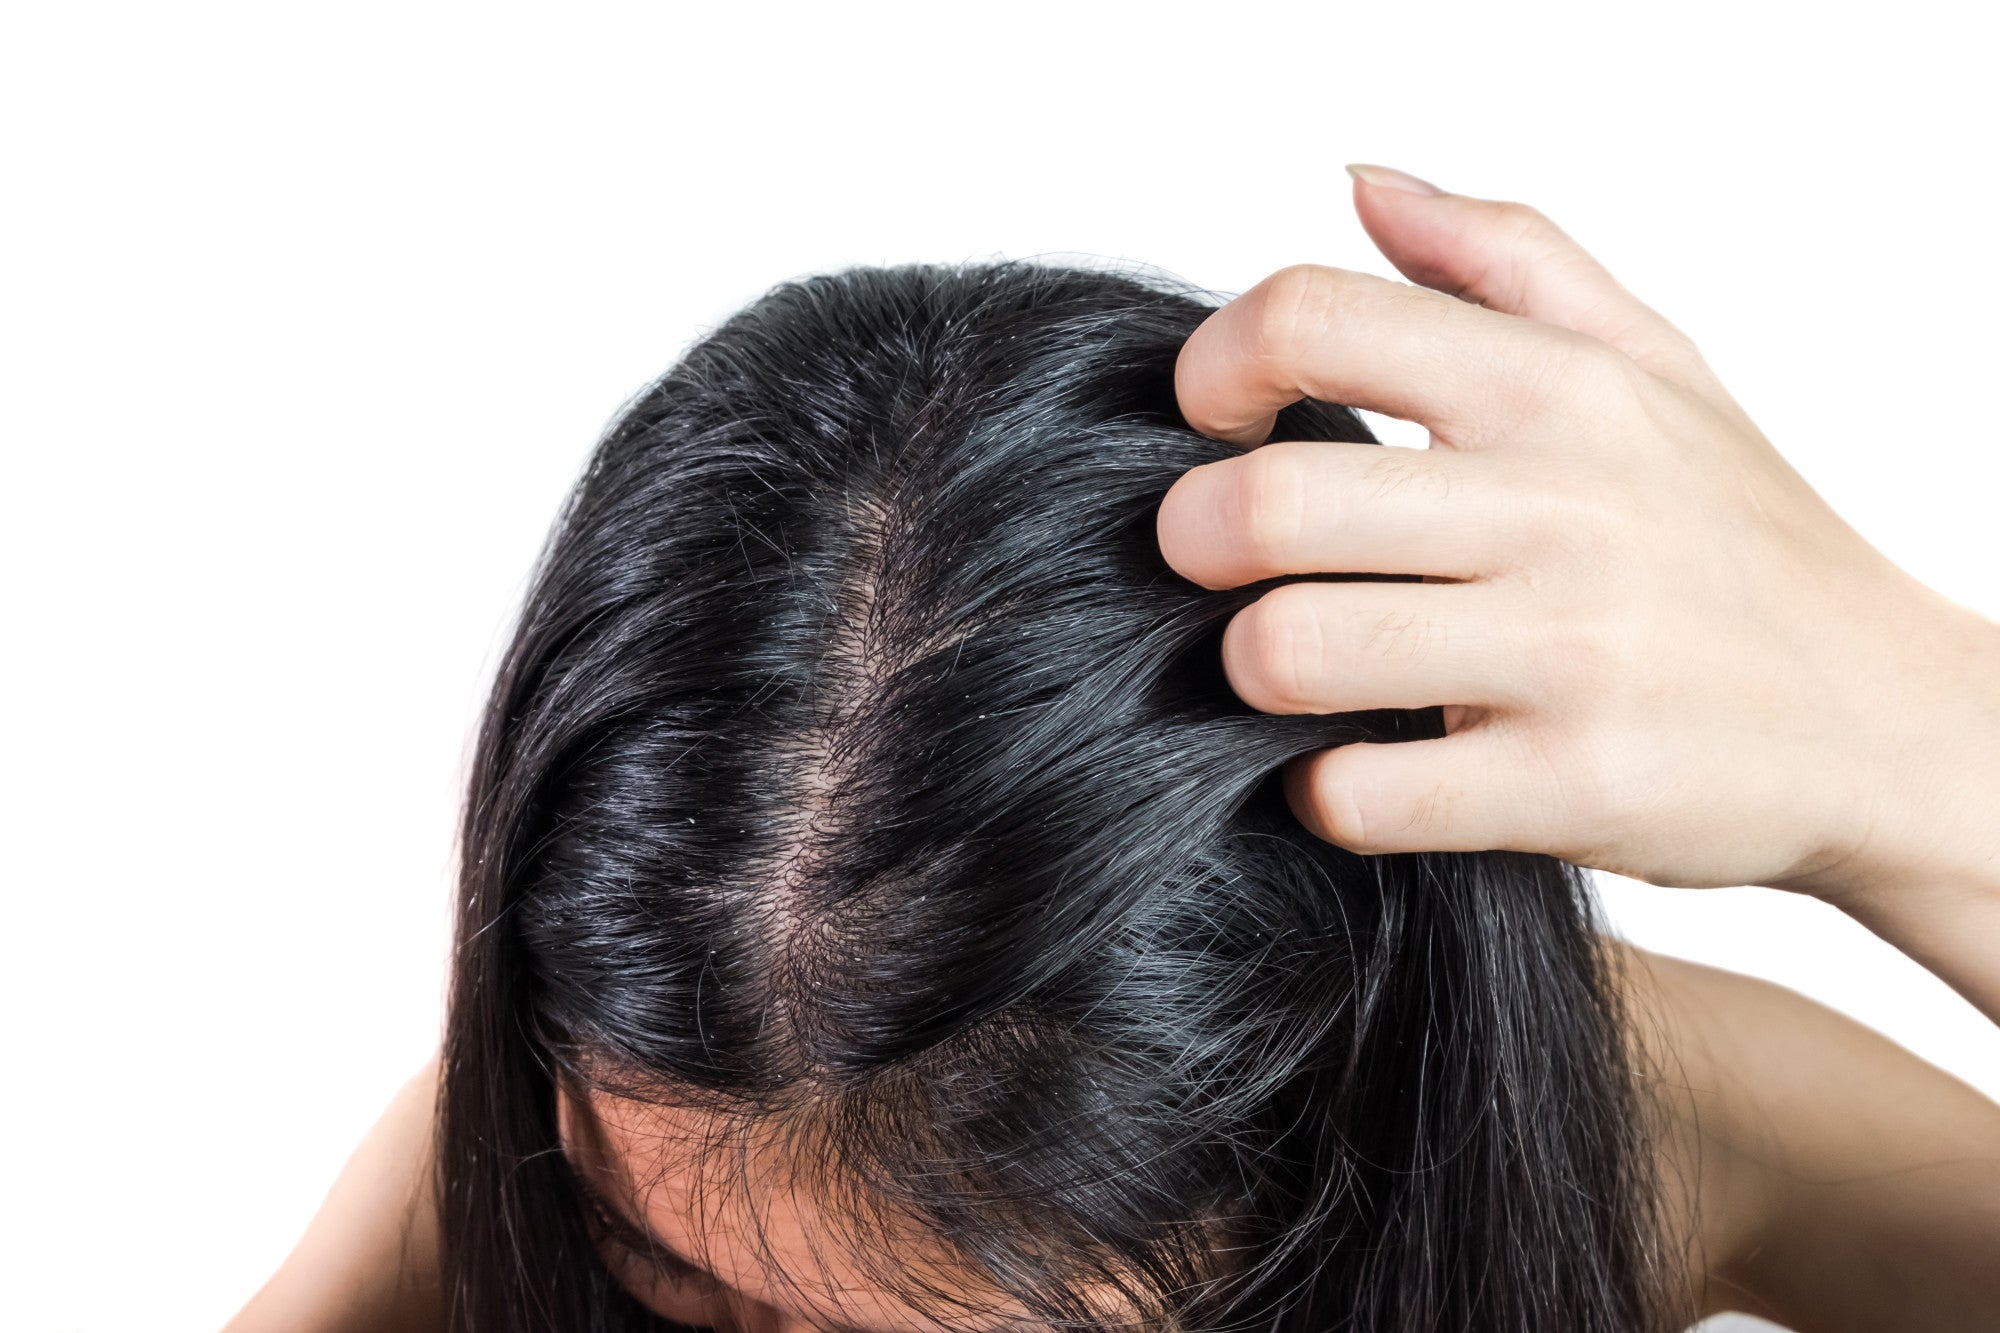 Flake Off: 9 Natural Remedies for Dandruff That Actually Work